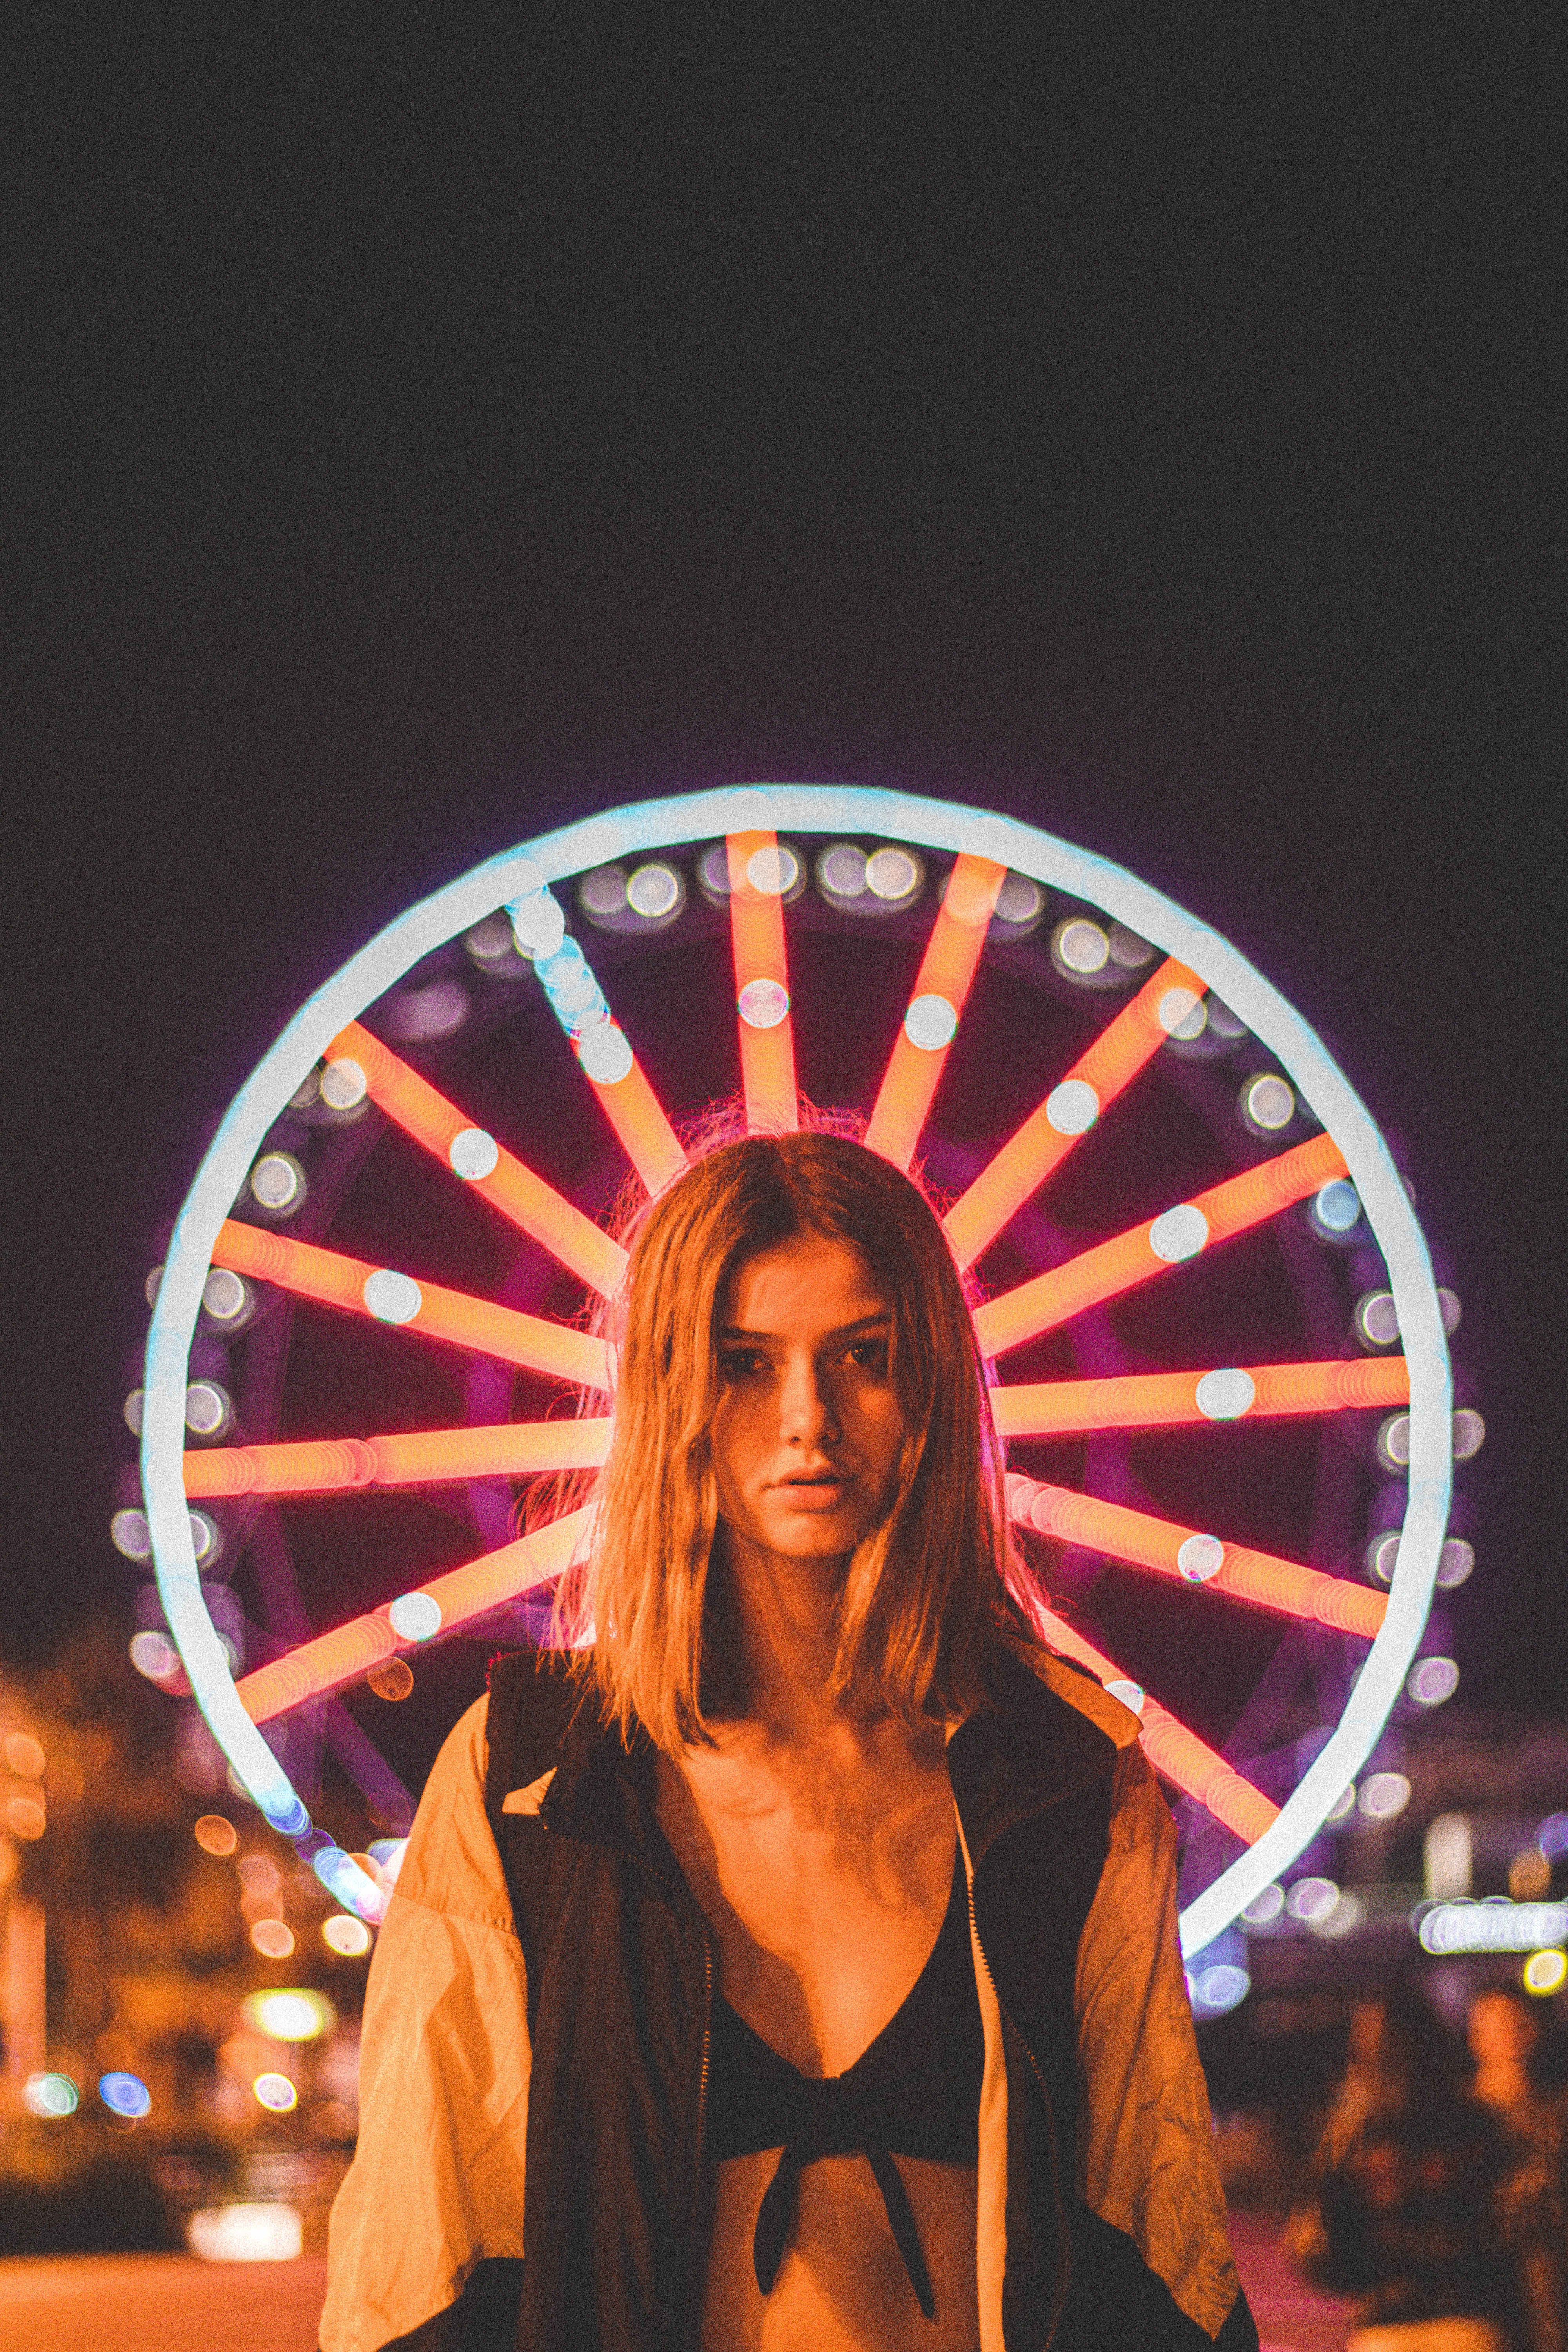 woman standing in front of lighted Ferris wheel at nighttime